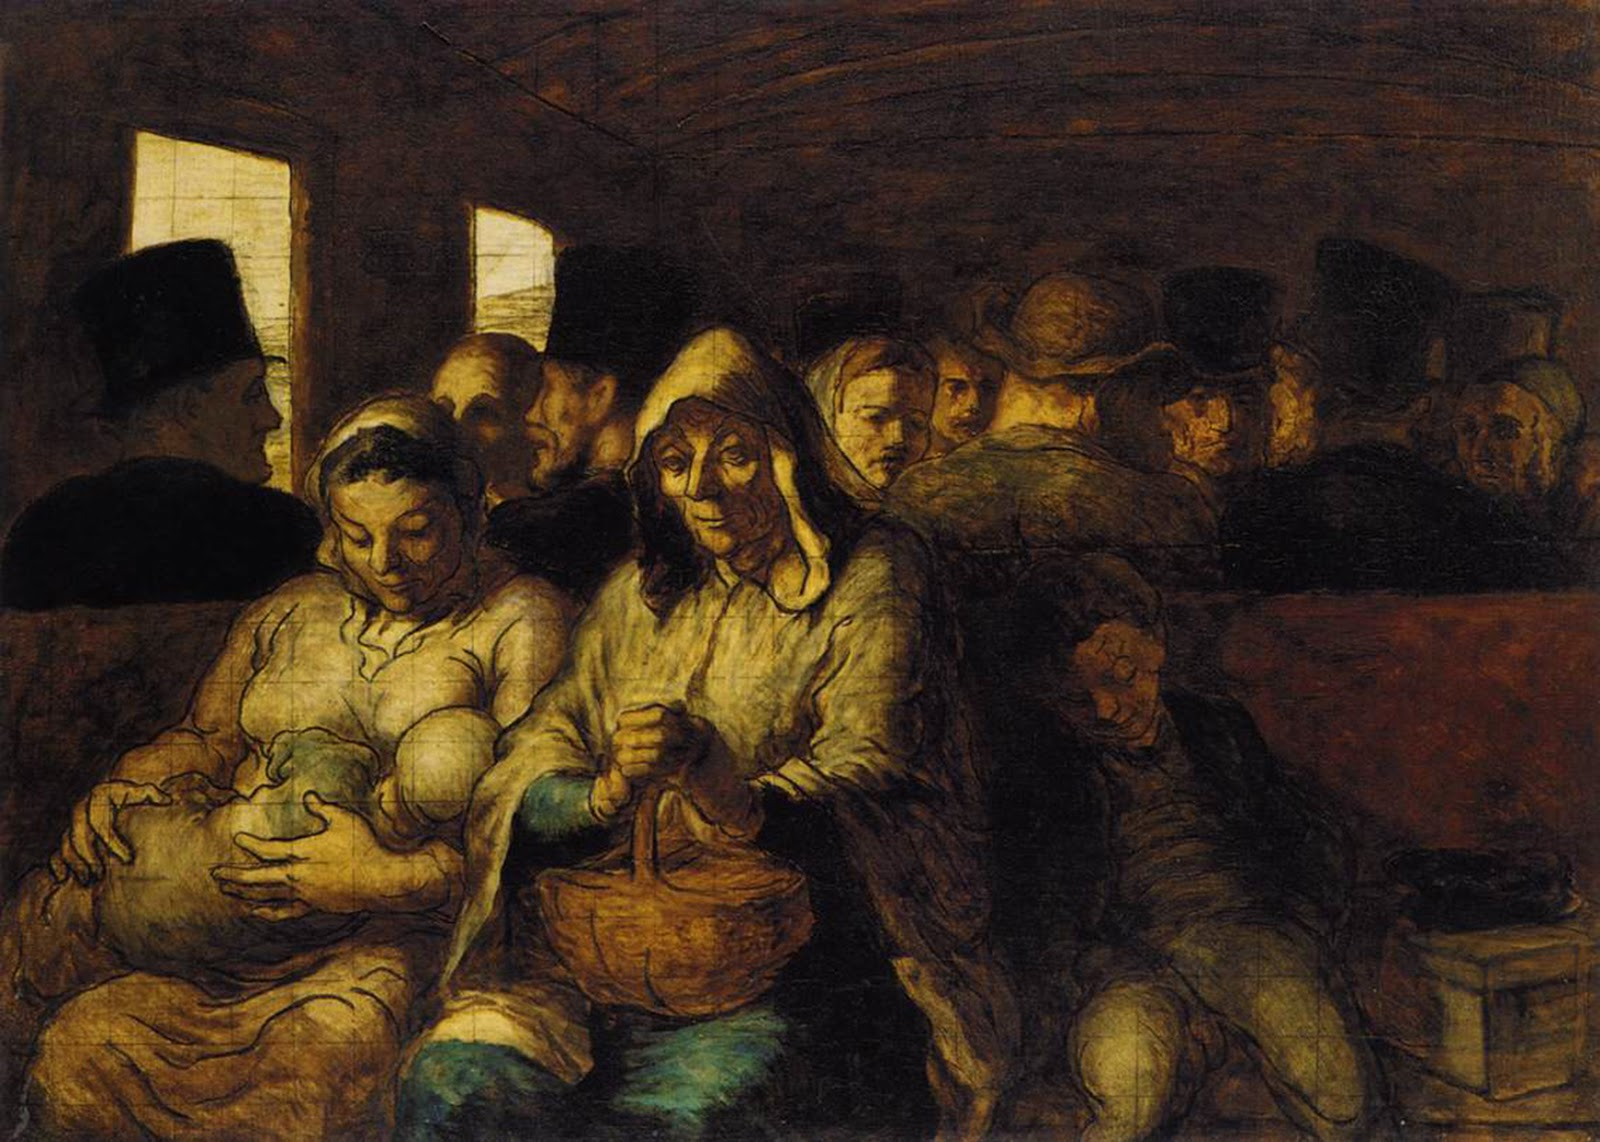 Third Class Carriage by Honoré Daumier